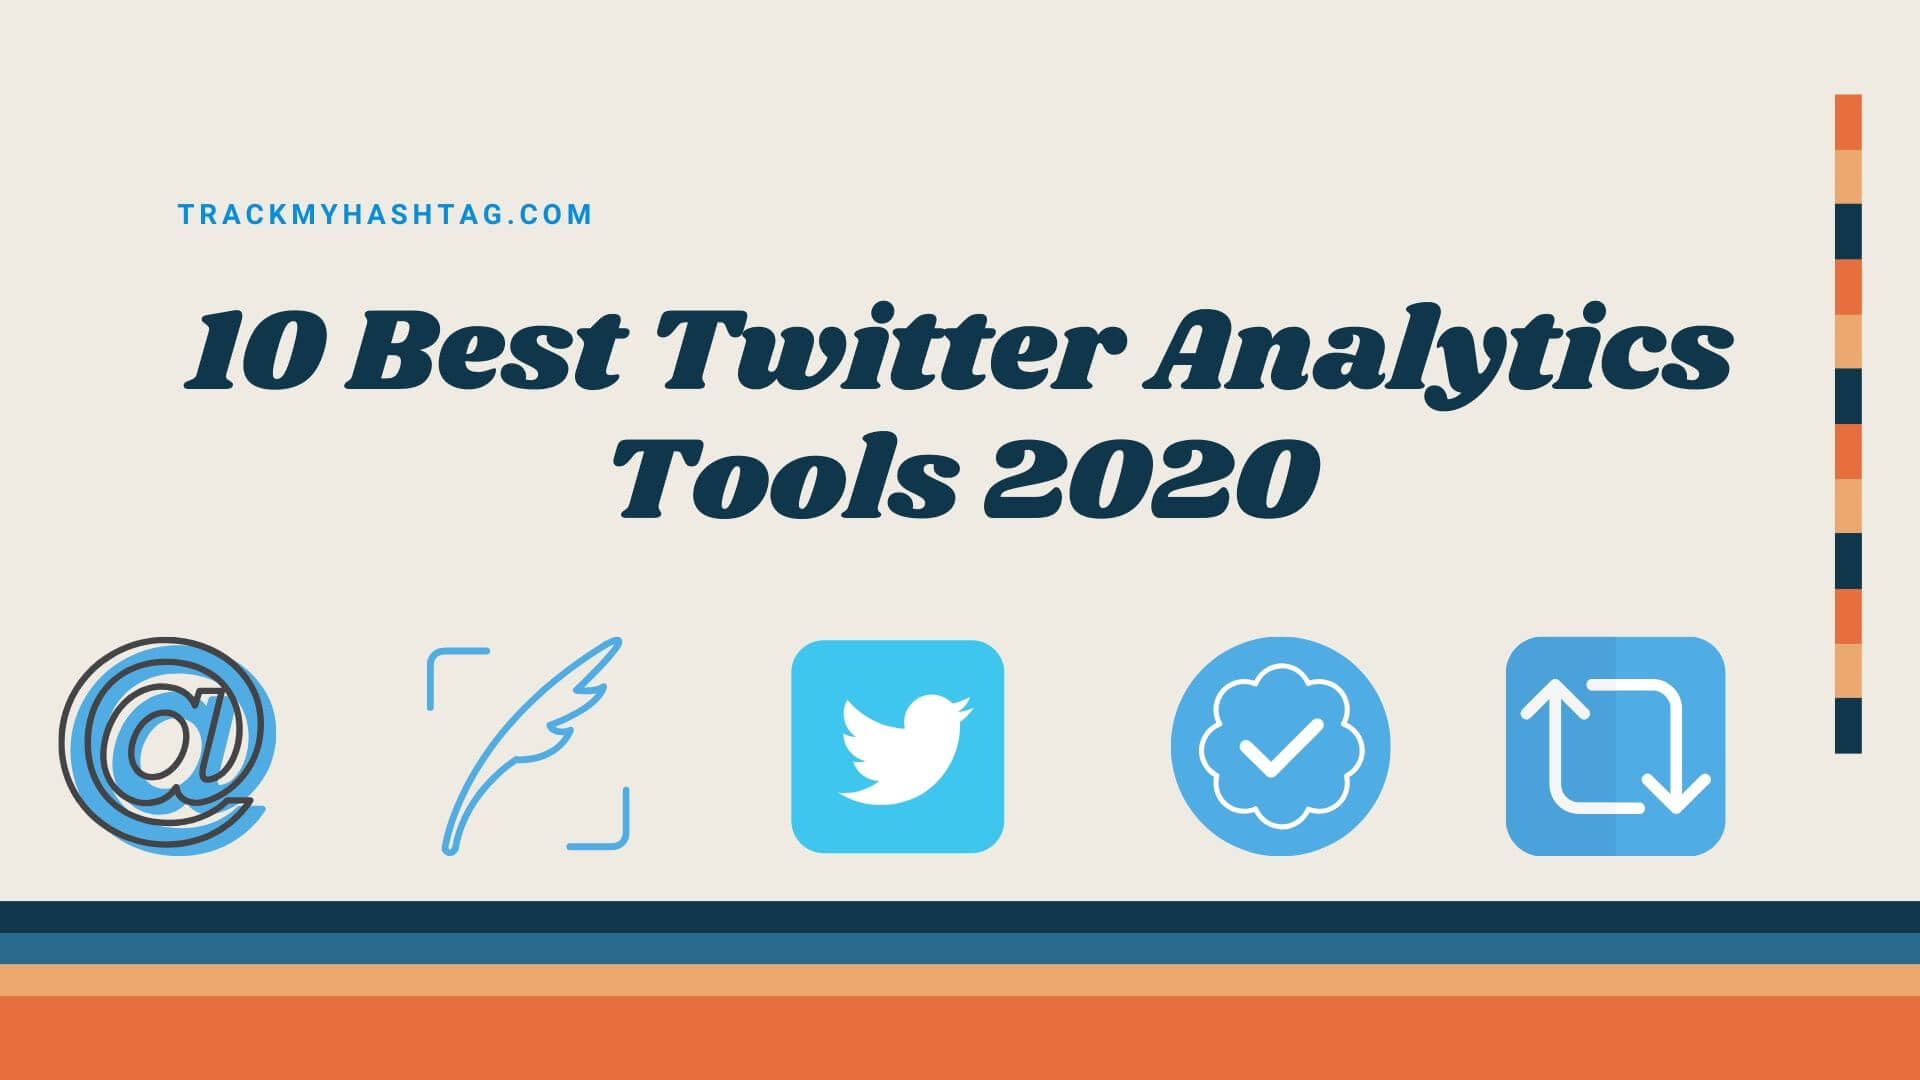 Top 10 Twitter Analytics Tools